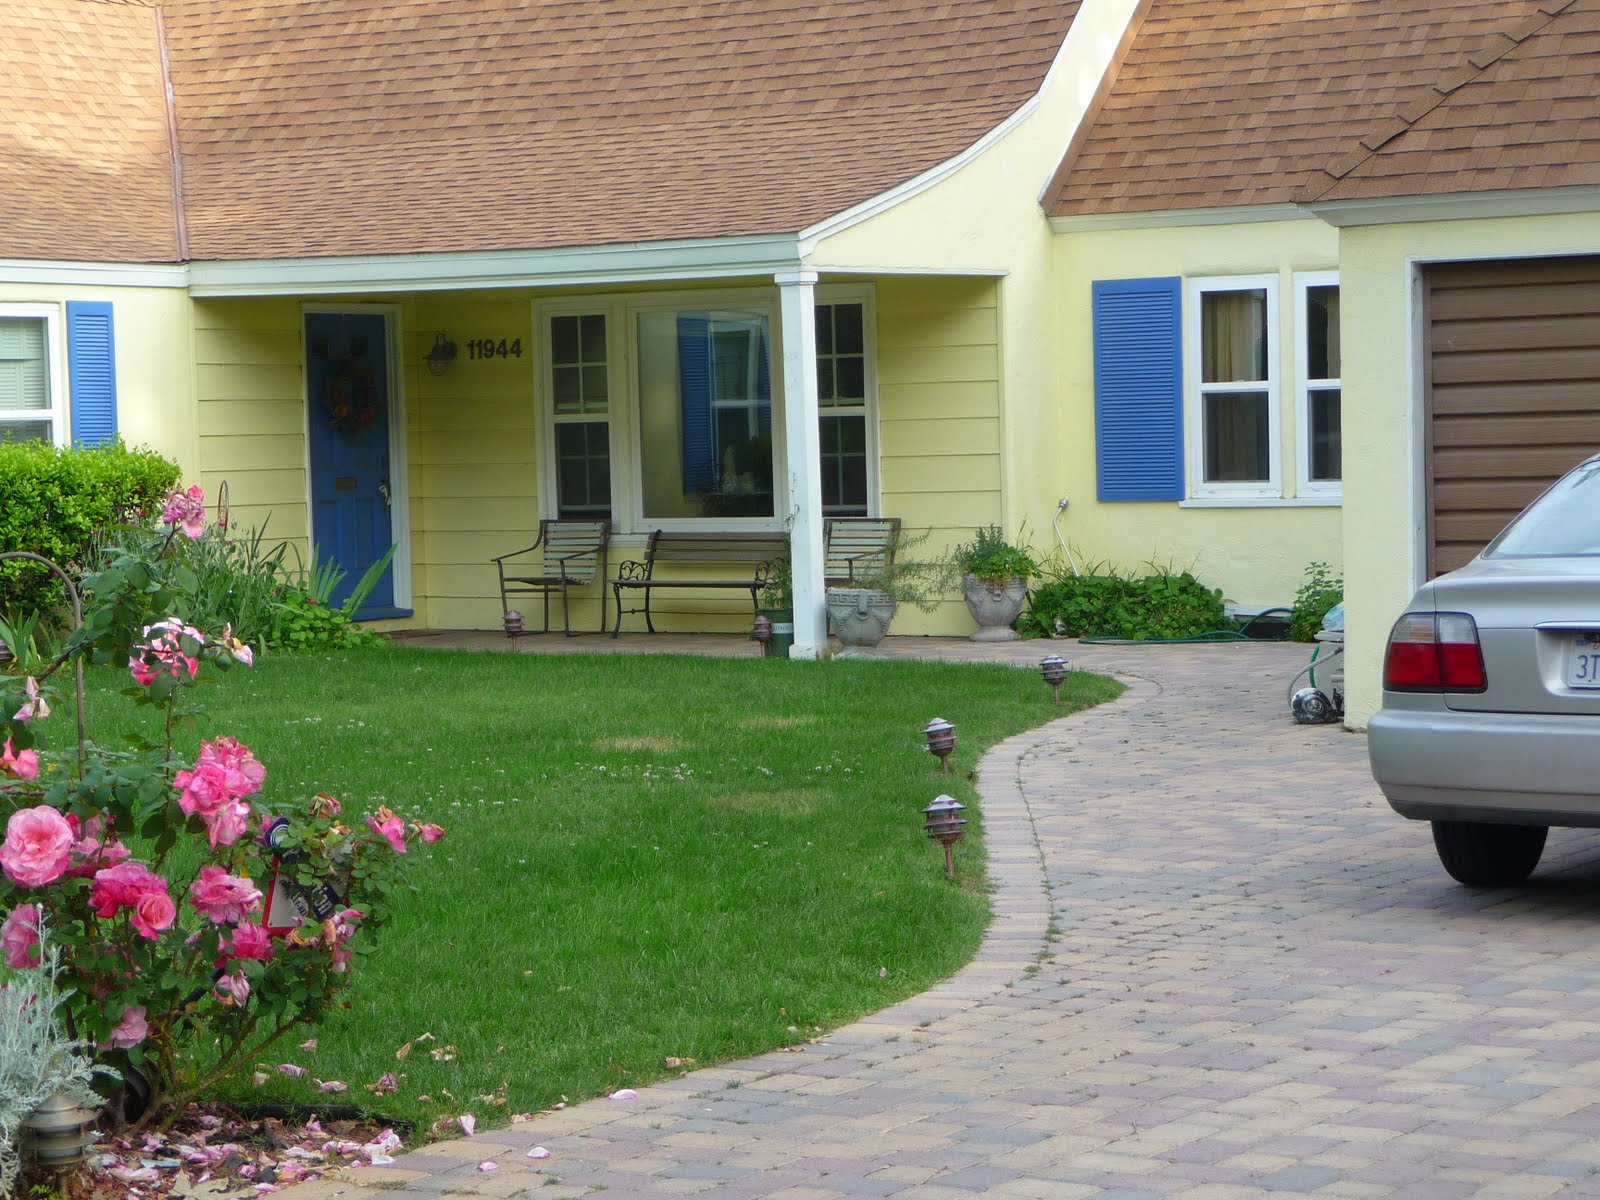 Teapots and Polka Dots: Houses in My Neighborhood: Color Schemes